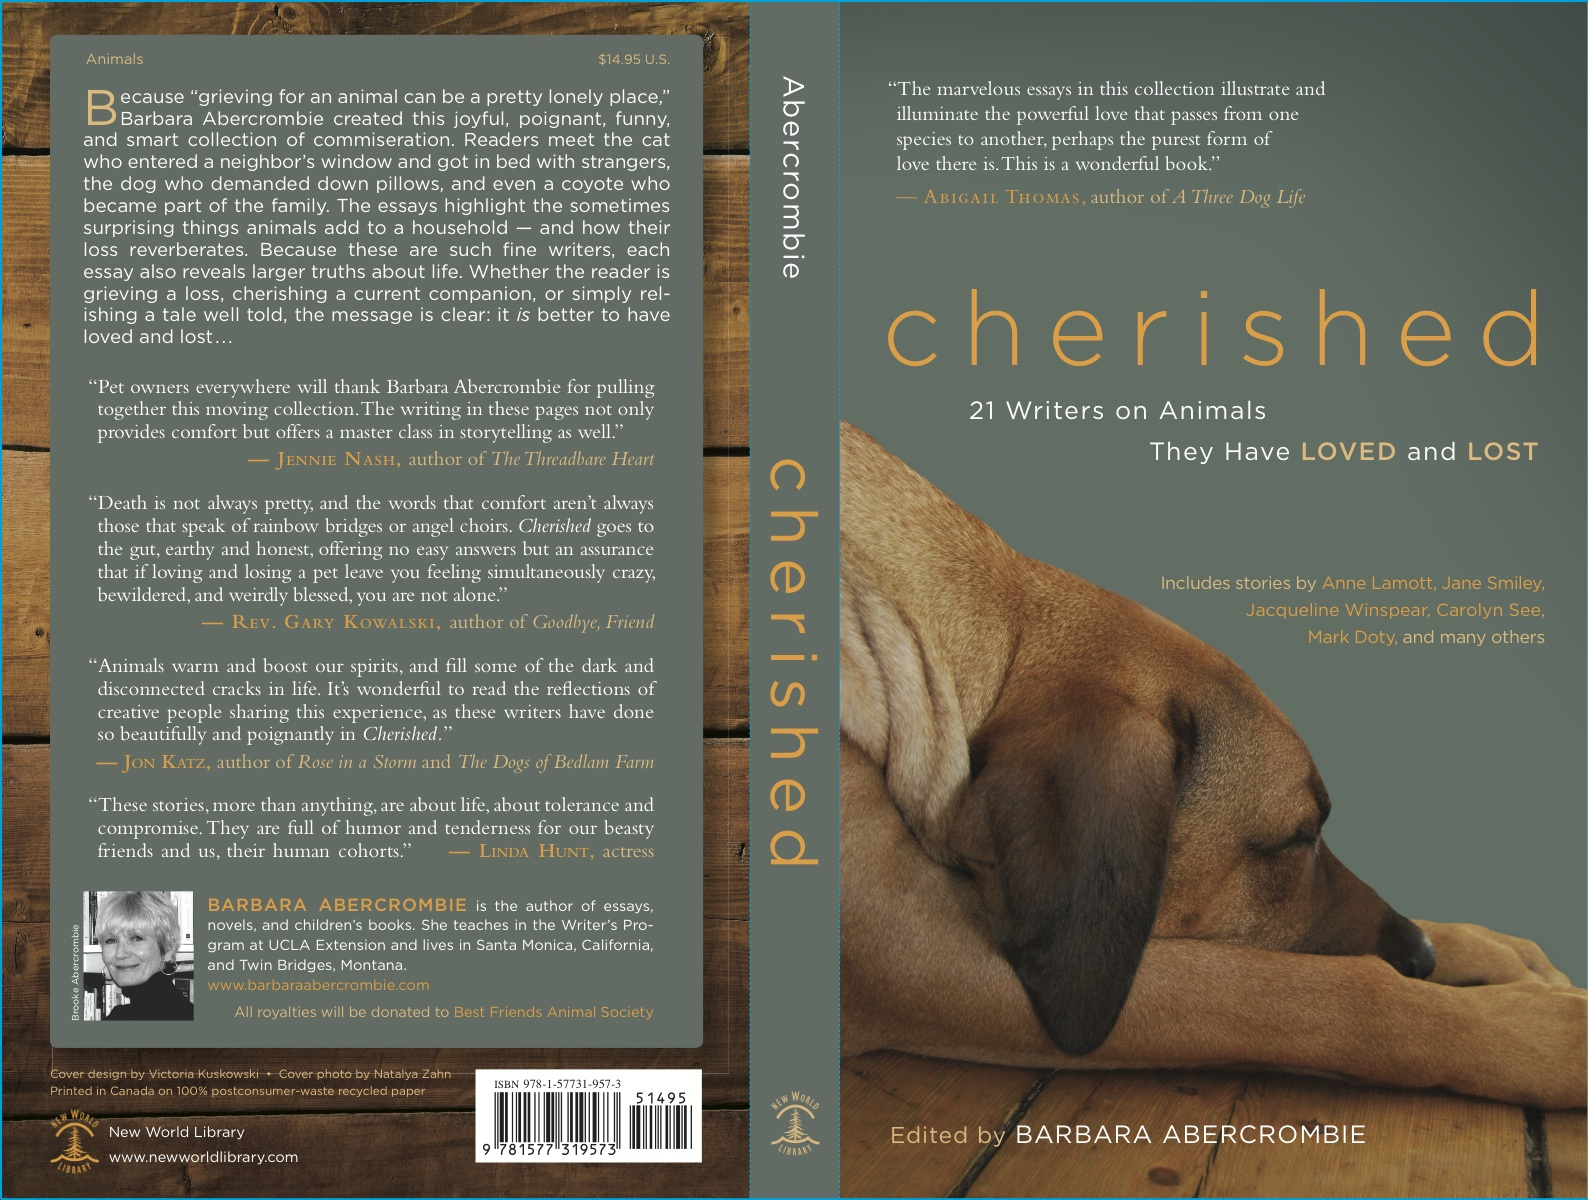 Cherished: Introduction - Barbara Abercrombie